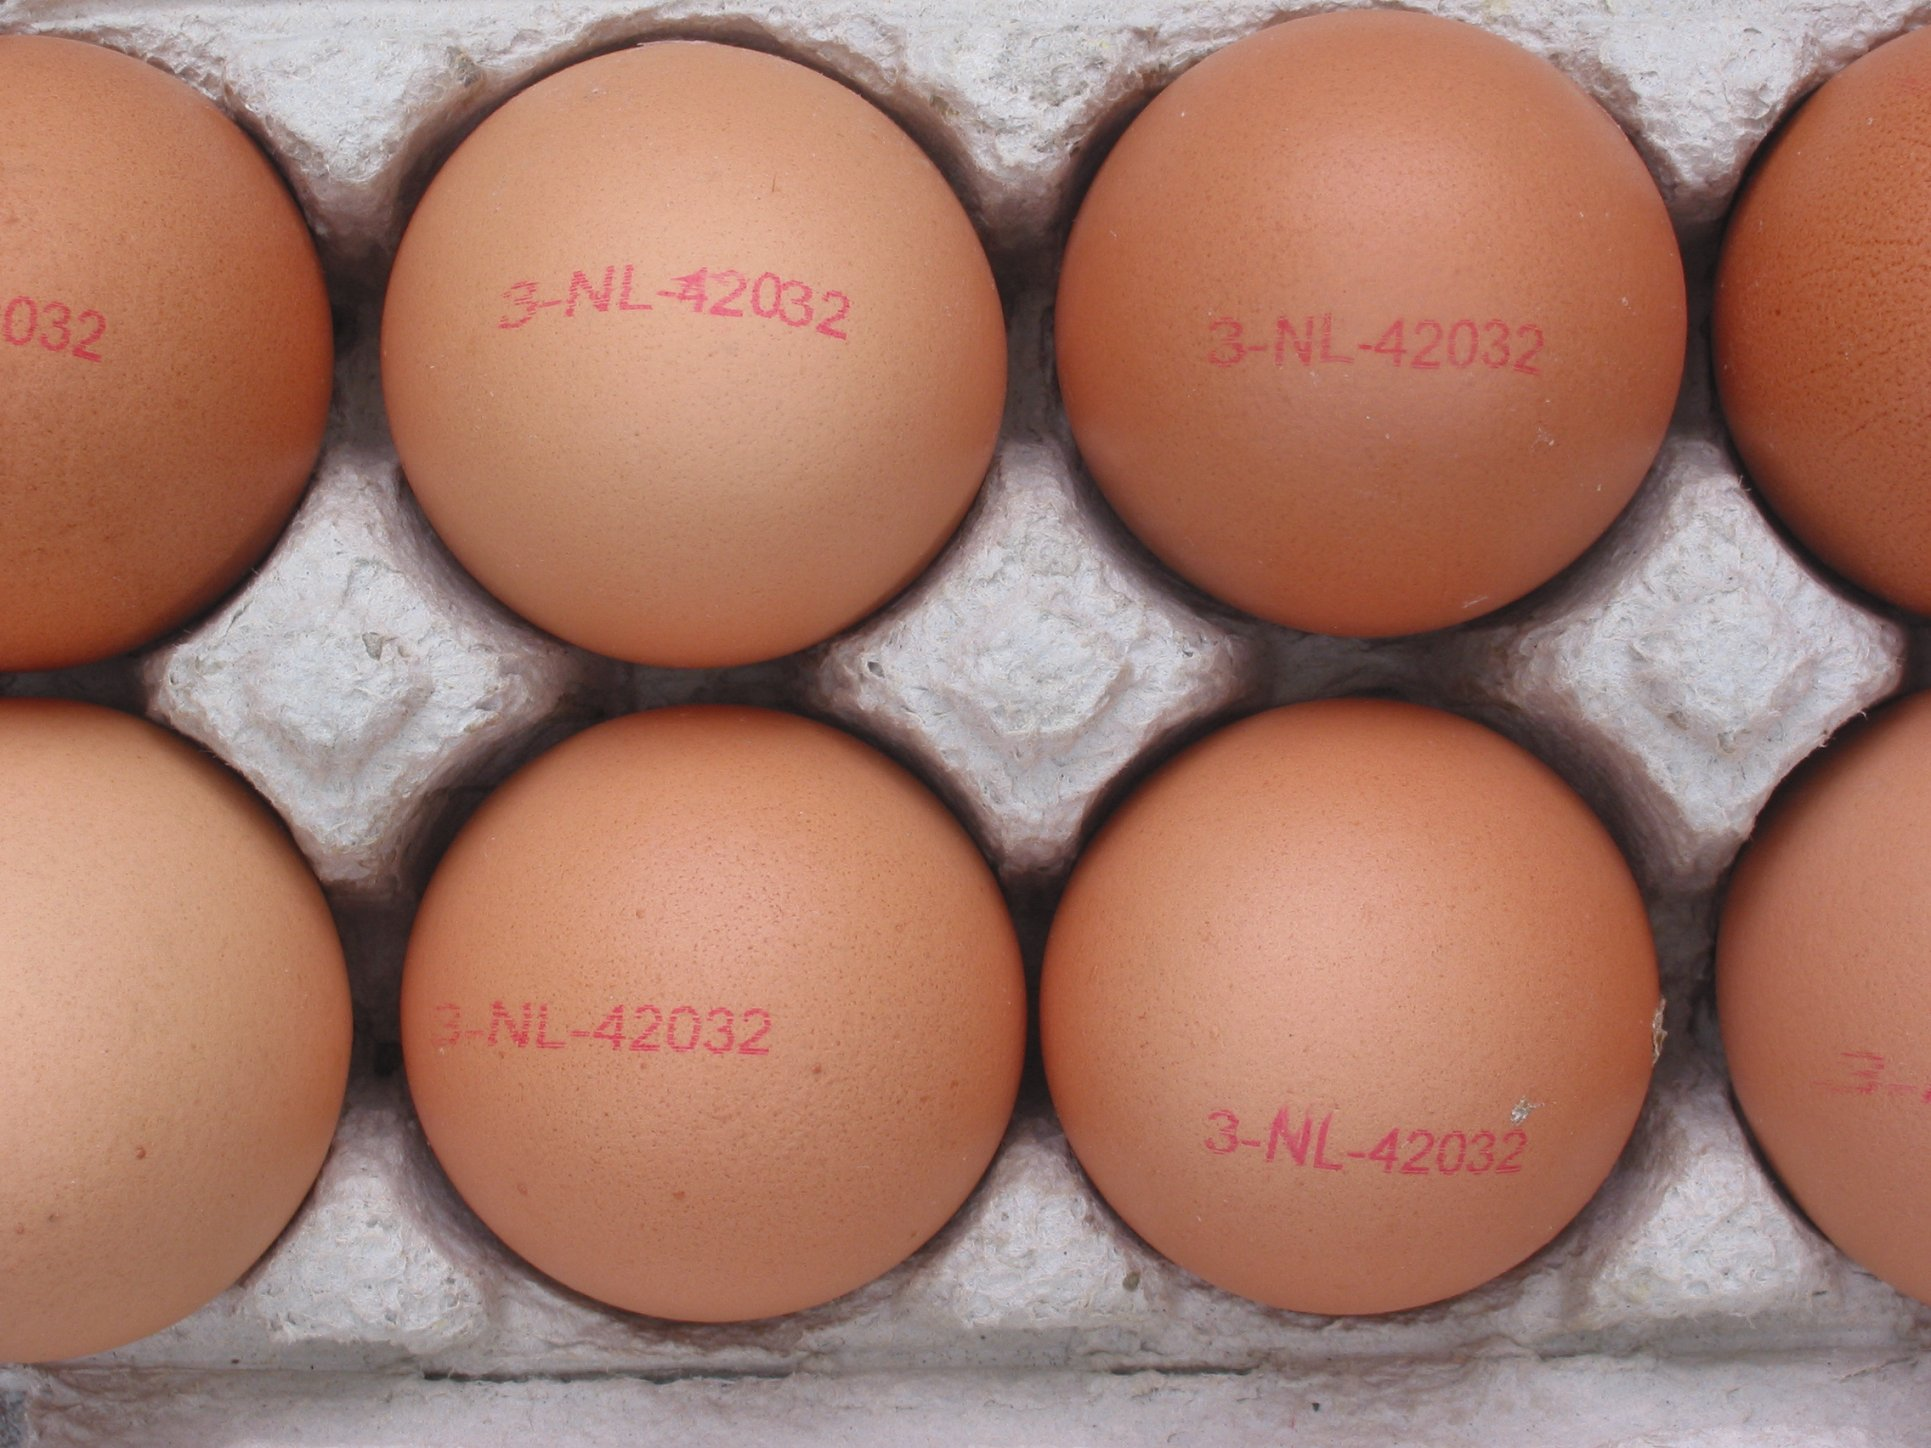 Organic eggs were recalled in three states following six diagnosed cases of salmonella.